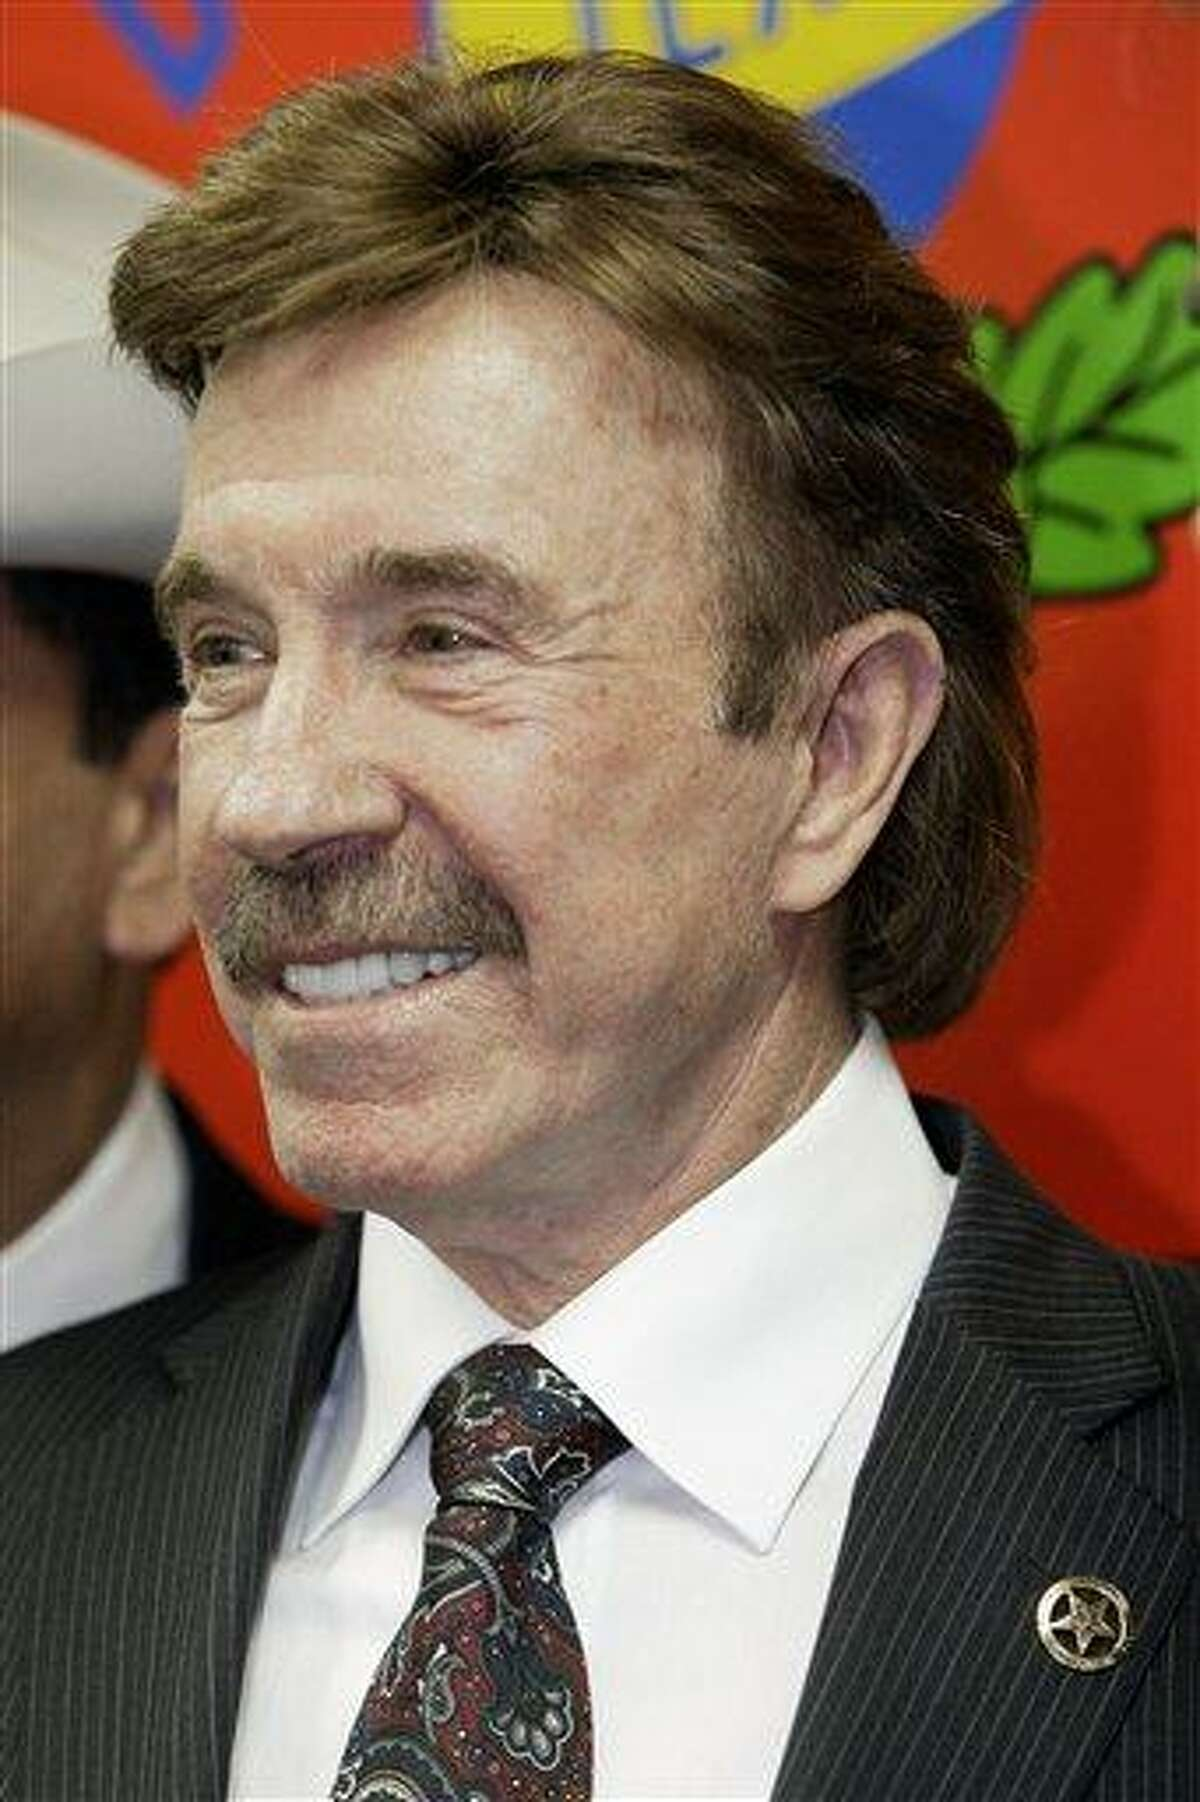 Actor Chuck Norris wears a honorary Texas Rangers law enforcement pin during a ceremony Thursday, Dec. 2, 2010, in Garland, Texas. Martial-arts expert Norris became a real-life honorary Texas Ranger after having played a Ranger for years on television. (AP Photo/Tony Gutierrez)